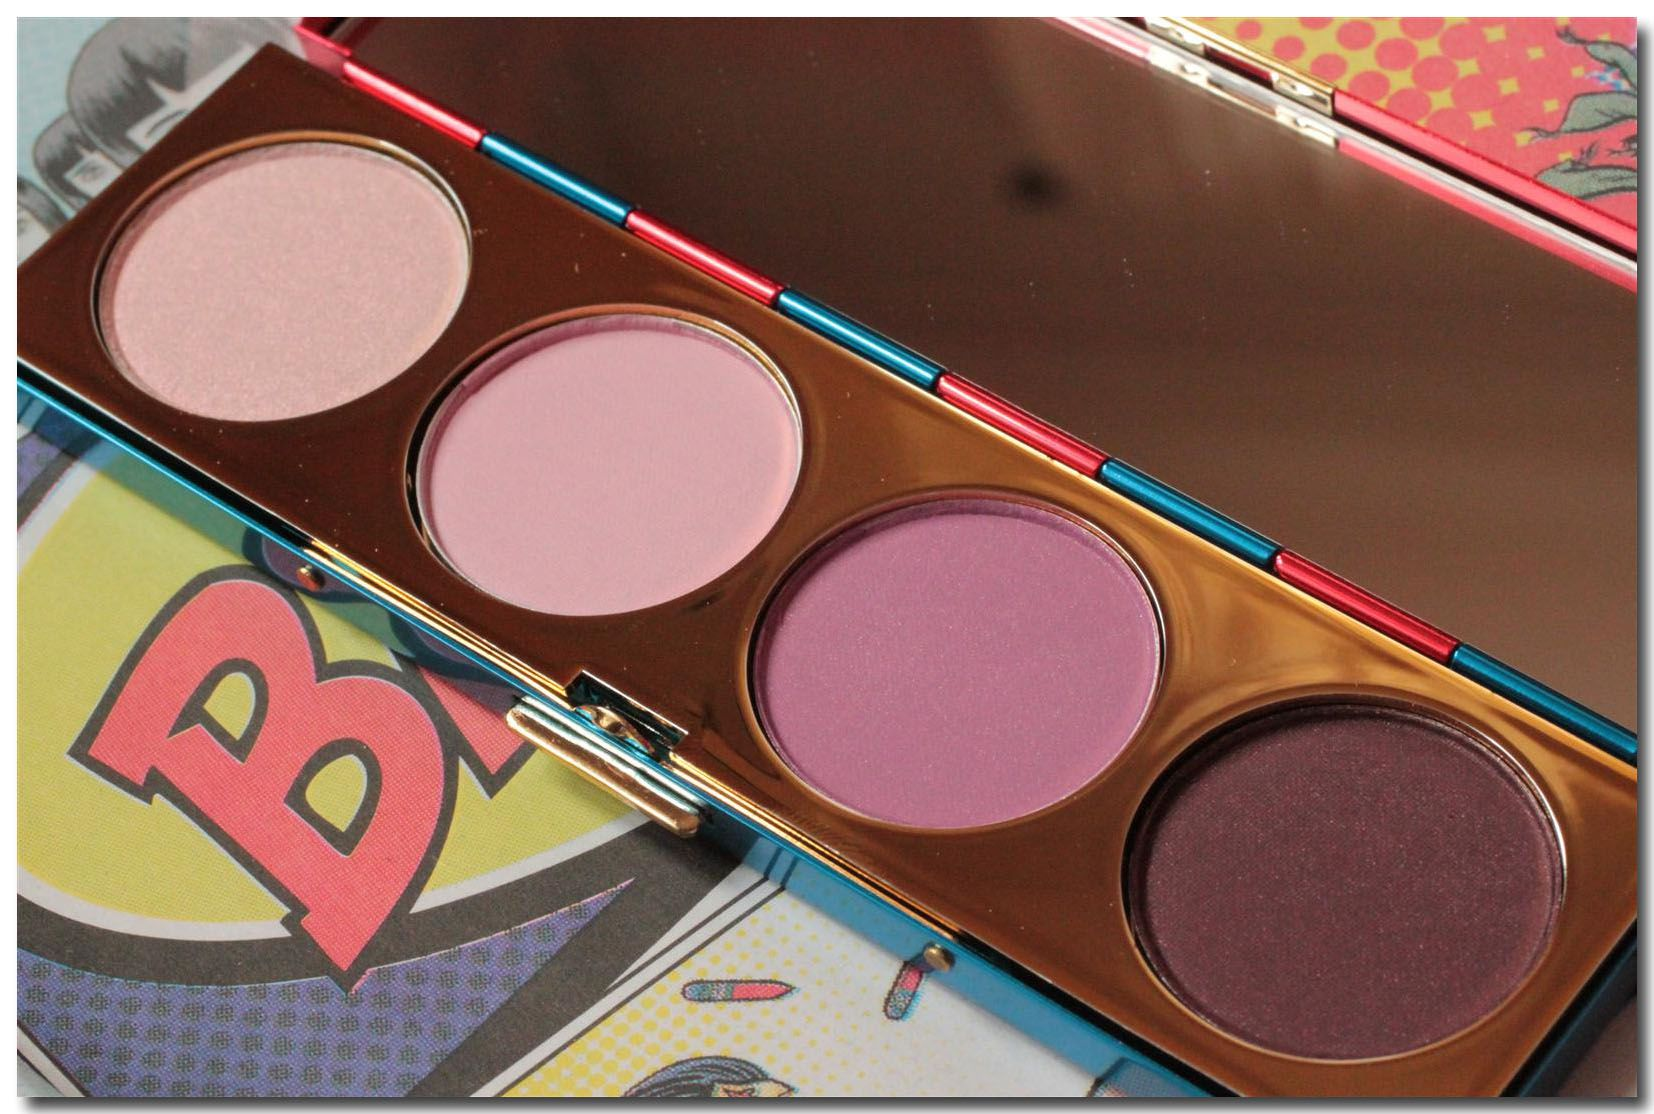 MAC Wonder Woman Defiance Eye Shadow Palette, one of my